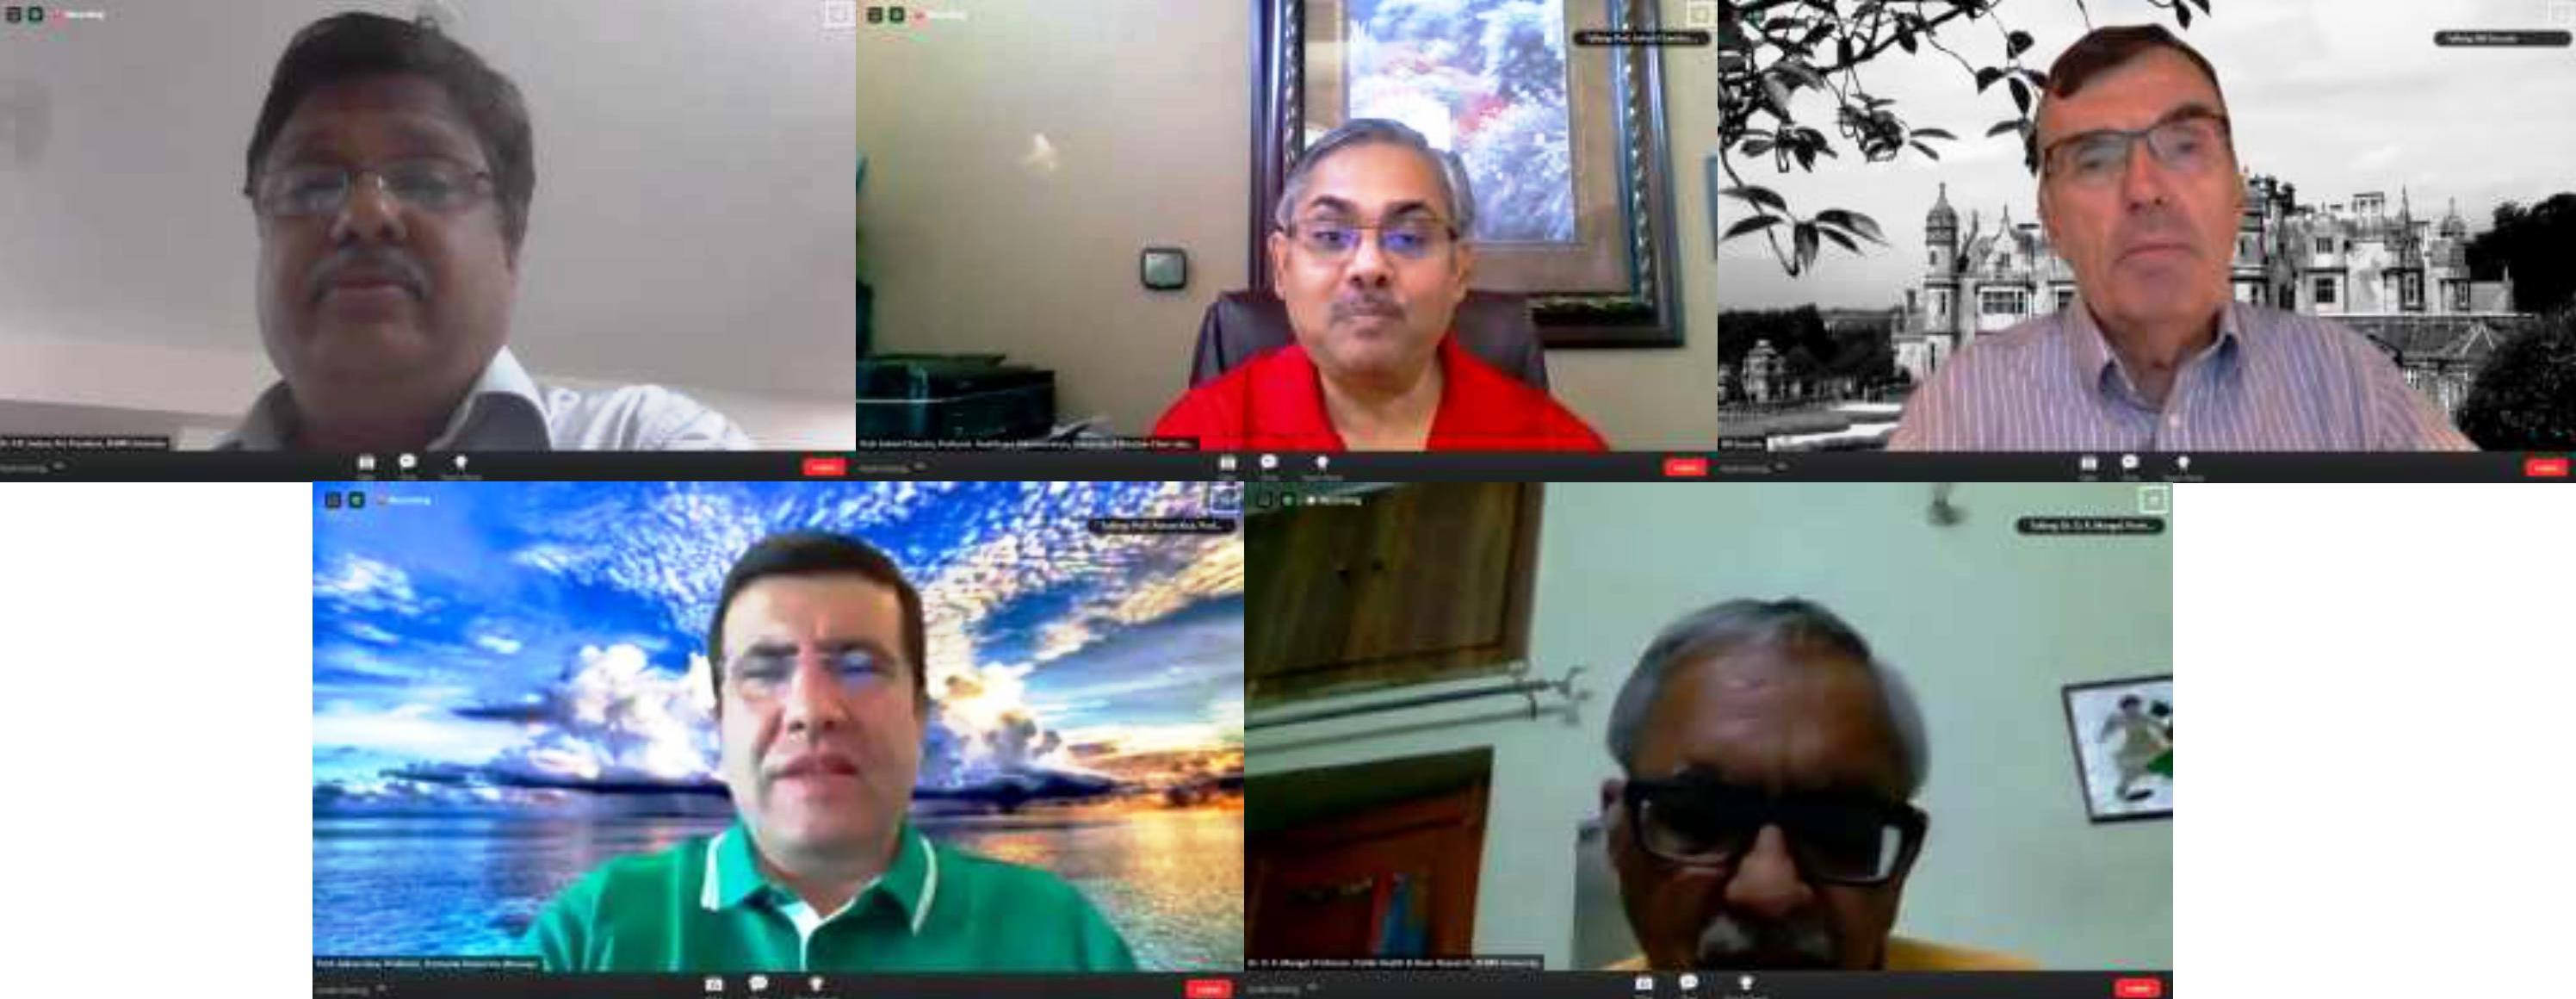 Experts Deliberate on Impact of COVID-19 on Global Healthcare at IIHMR Webinar